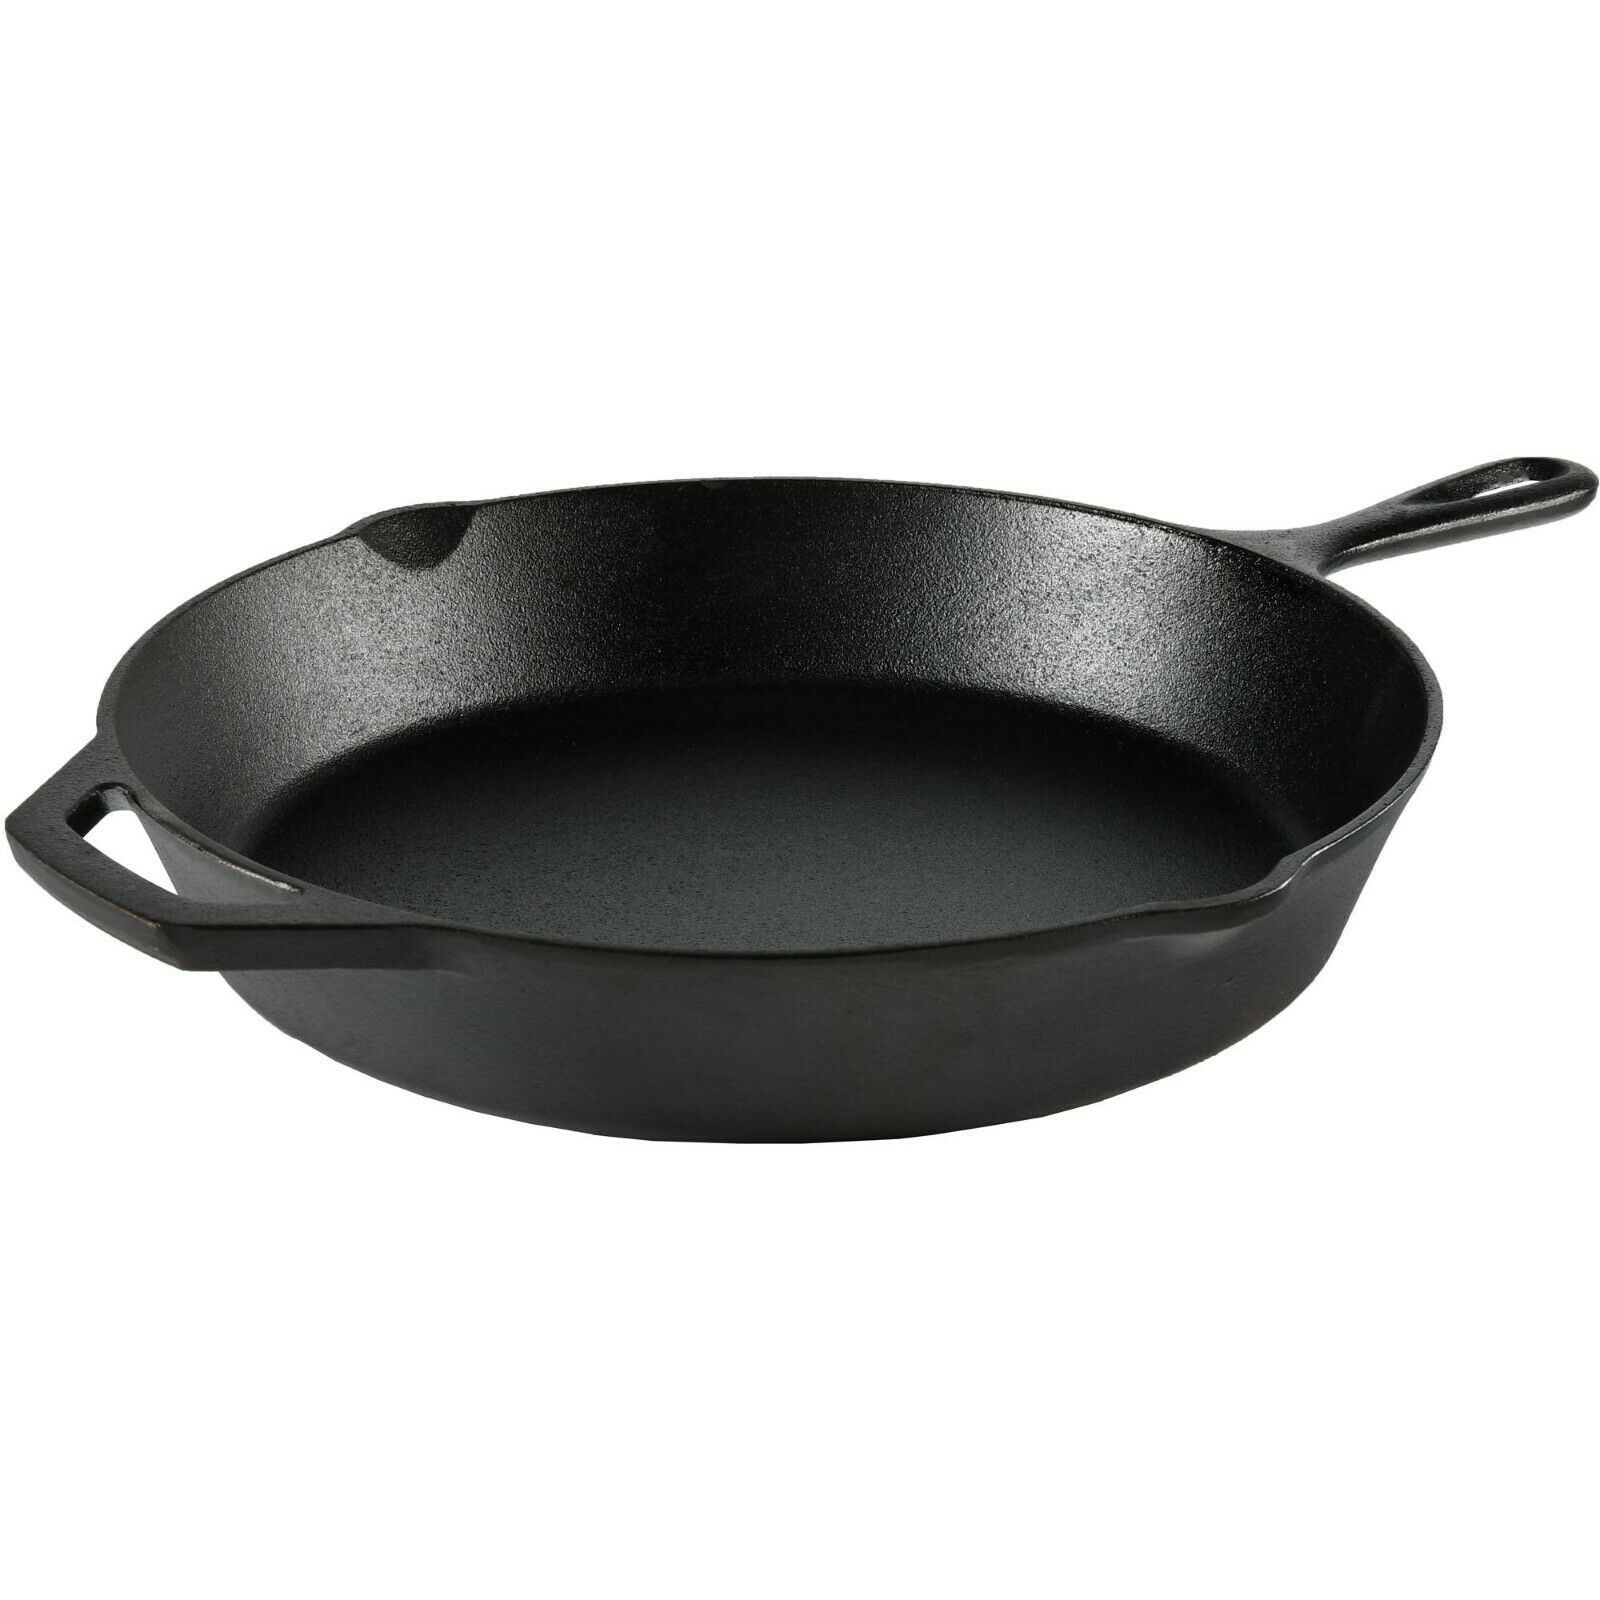 Cast Iron Skillet 12 Inch Nonstick Frying Pan Oven Cooking P